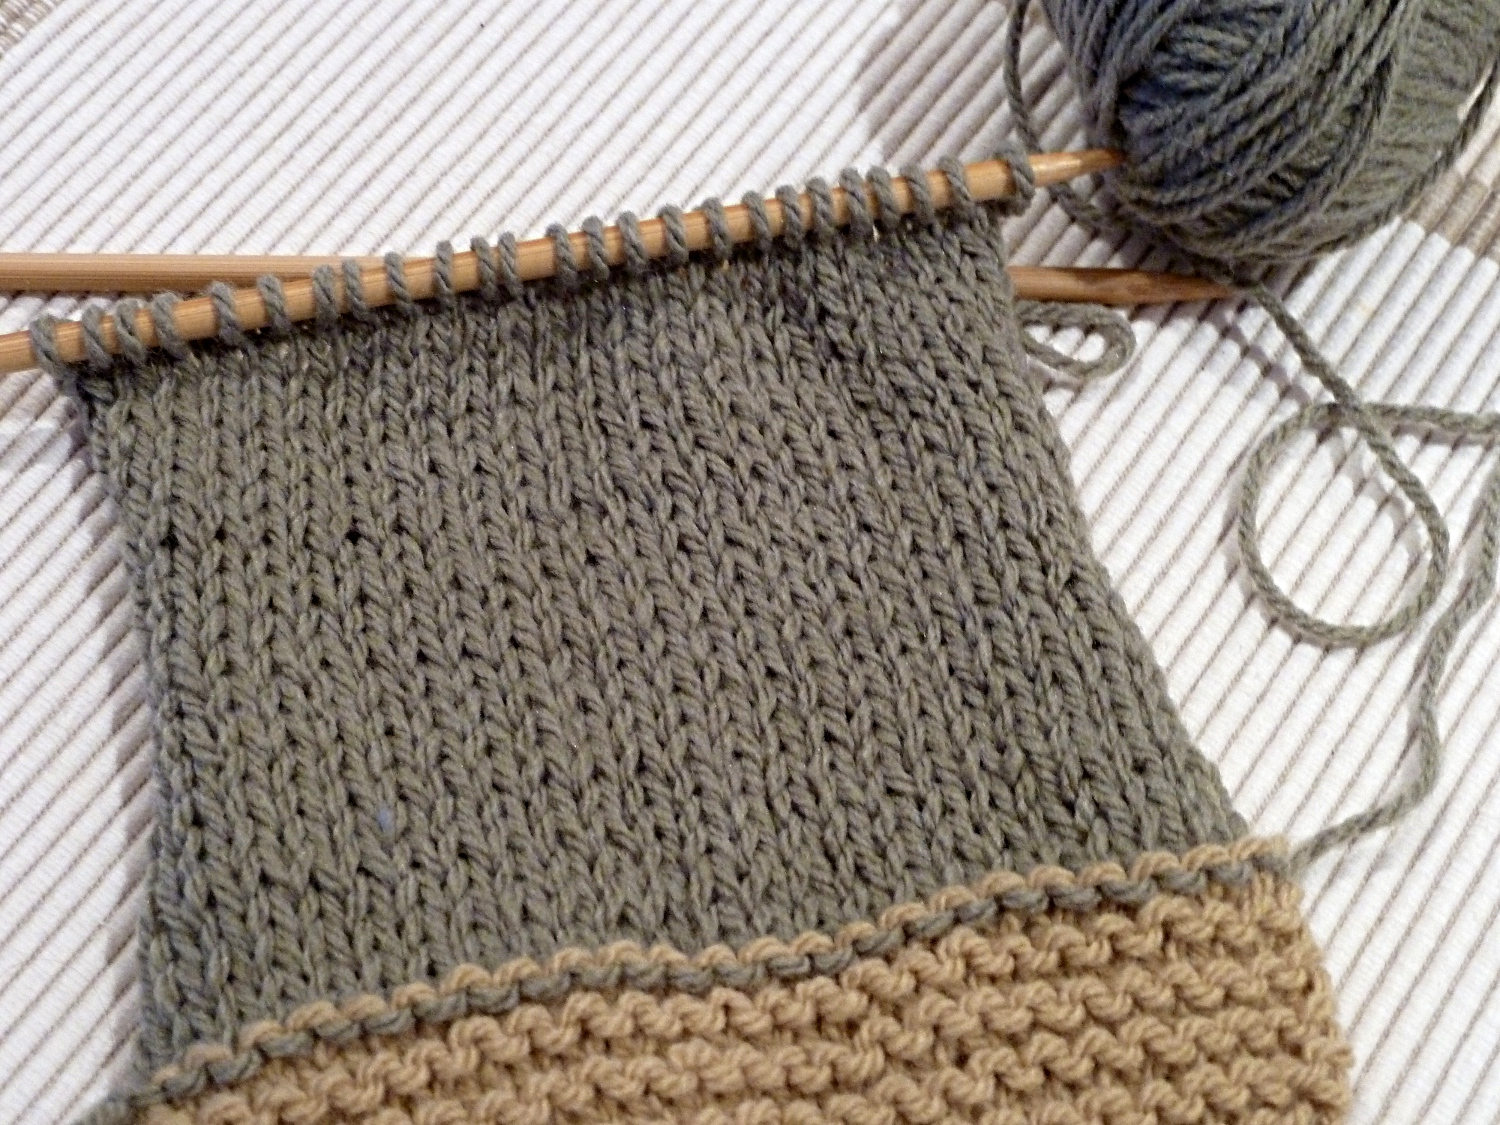 Knitting Increase Stitch At Beginning Of Row : Knitting for beginners #s 5 & 6 - A Stitching Odyssey